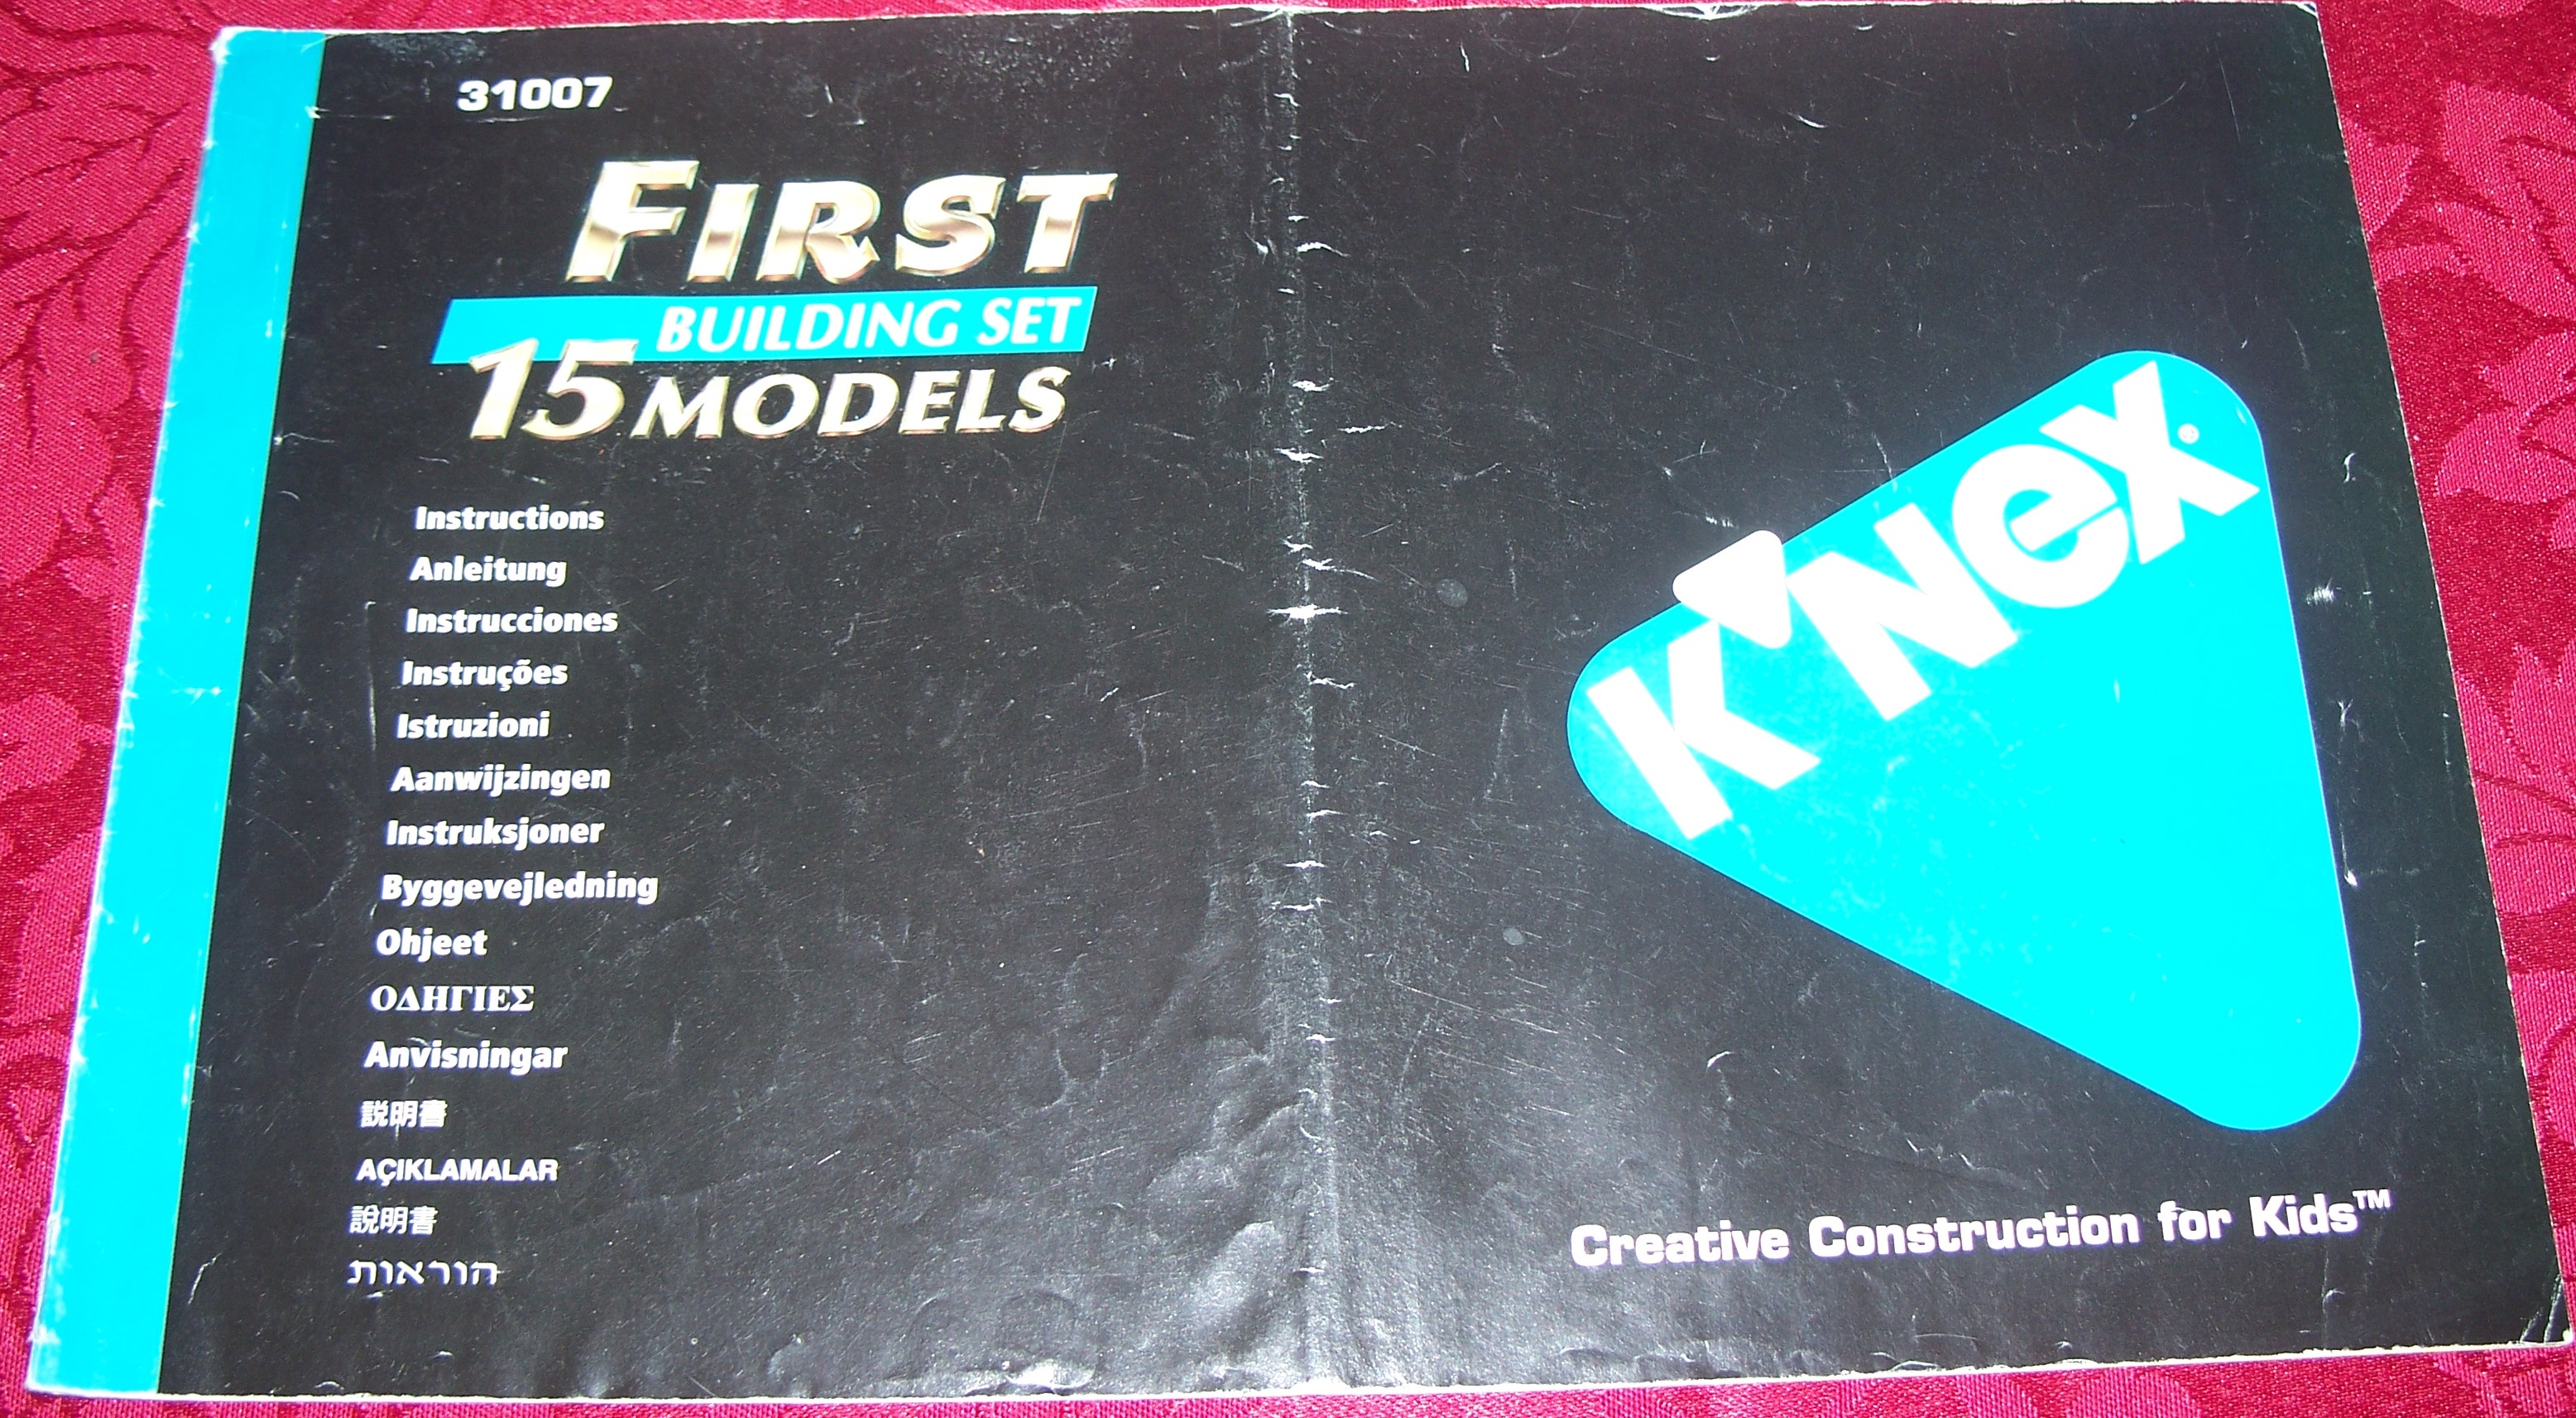 Instruction Book First build set 15 models 31007 - Click Image to Close